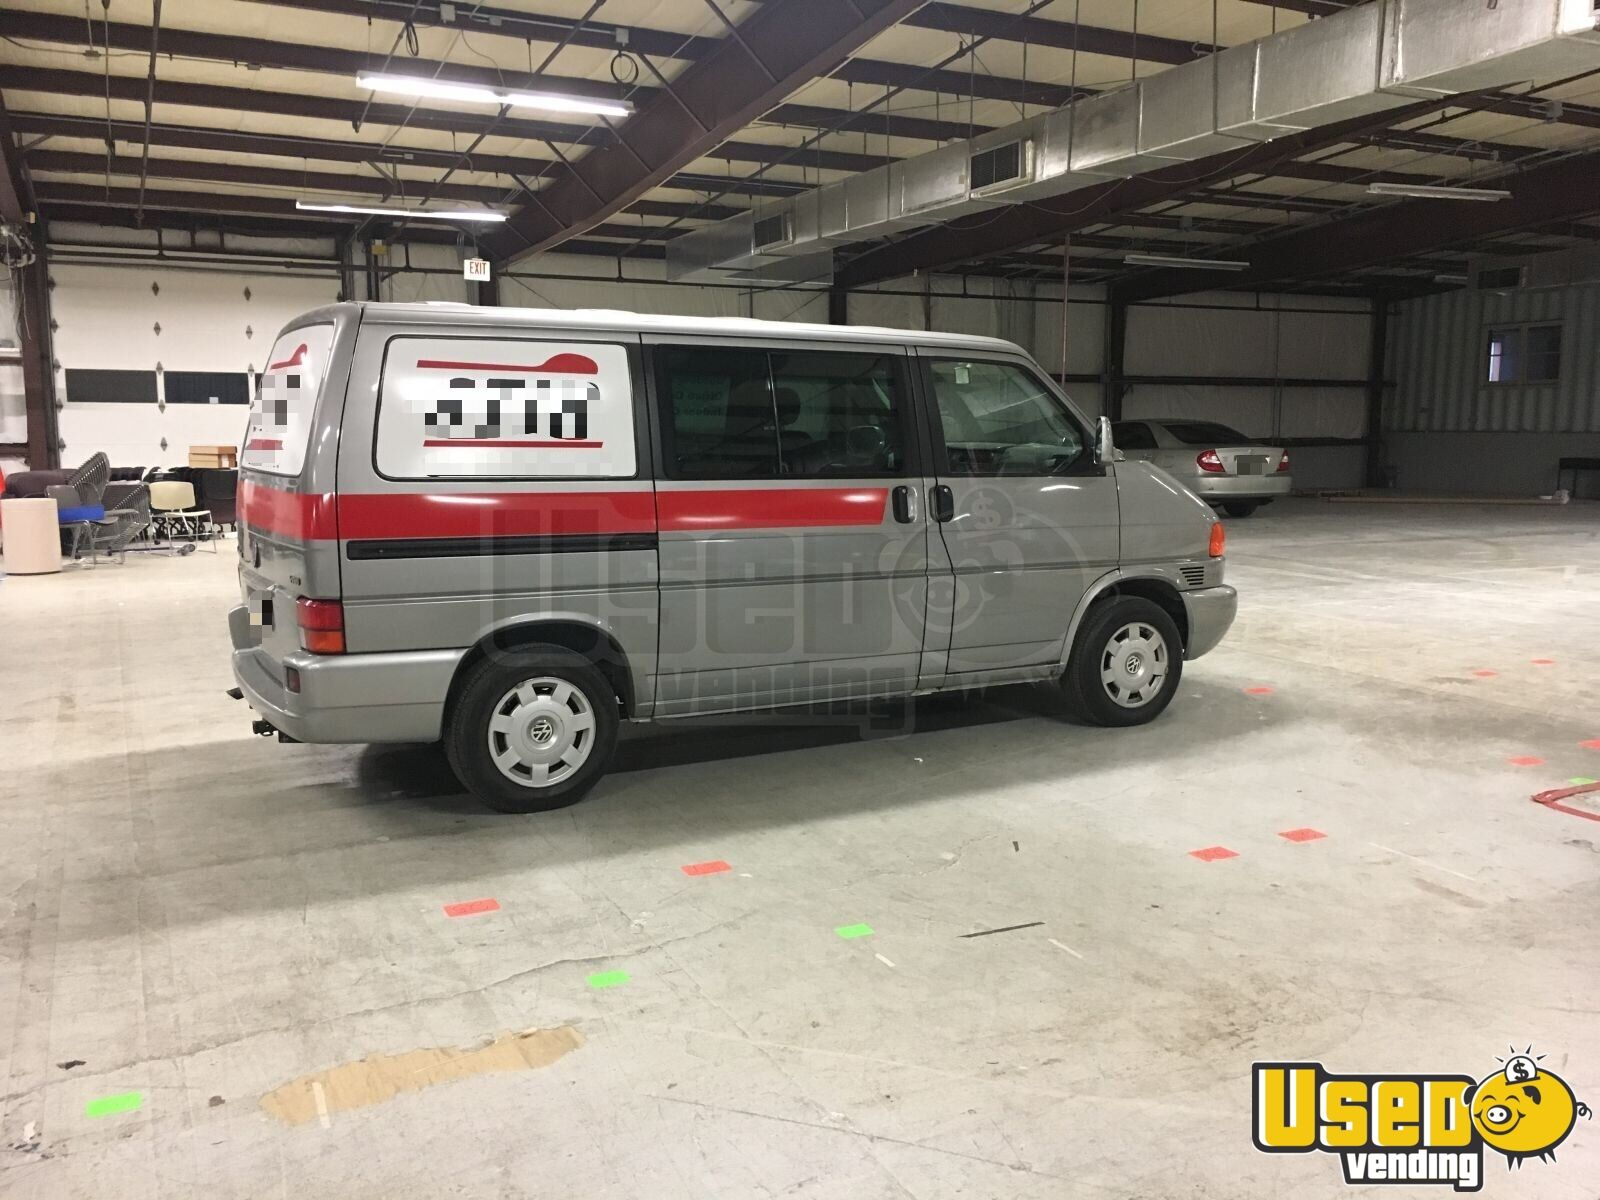 2001 Volkswagen Eurovan Coffee Truck Diamond Plated Aluminum Flooring Indiana Gas Engine for Sale - 3